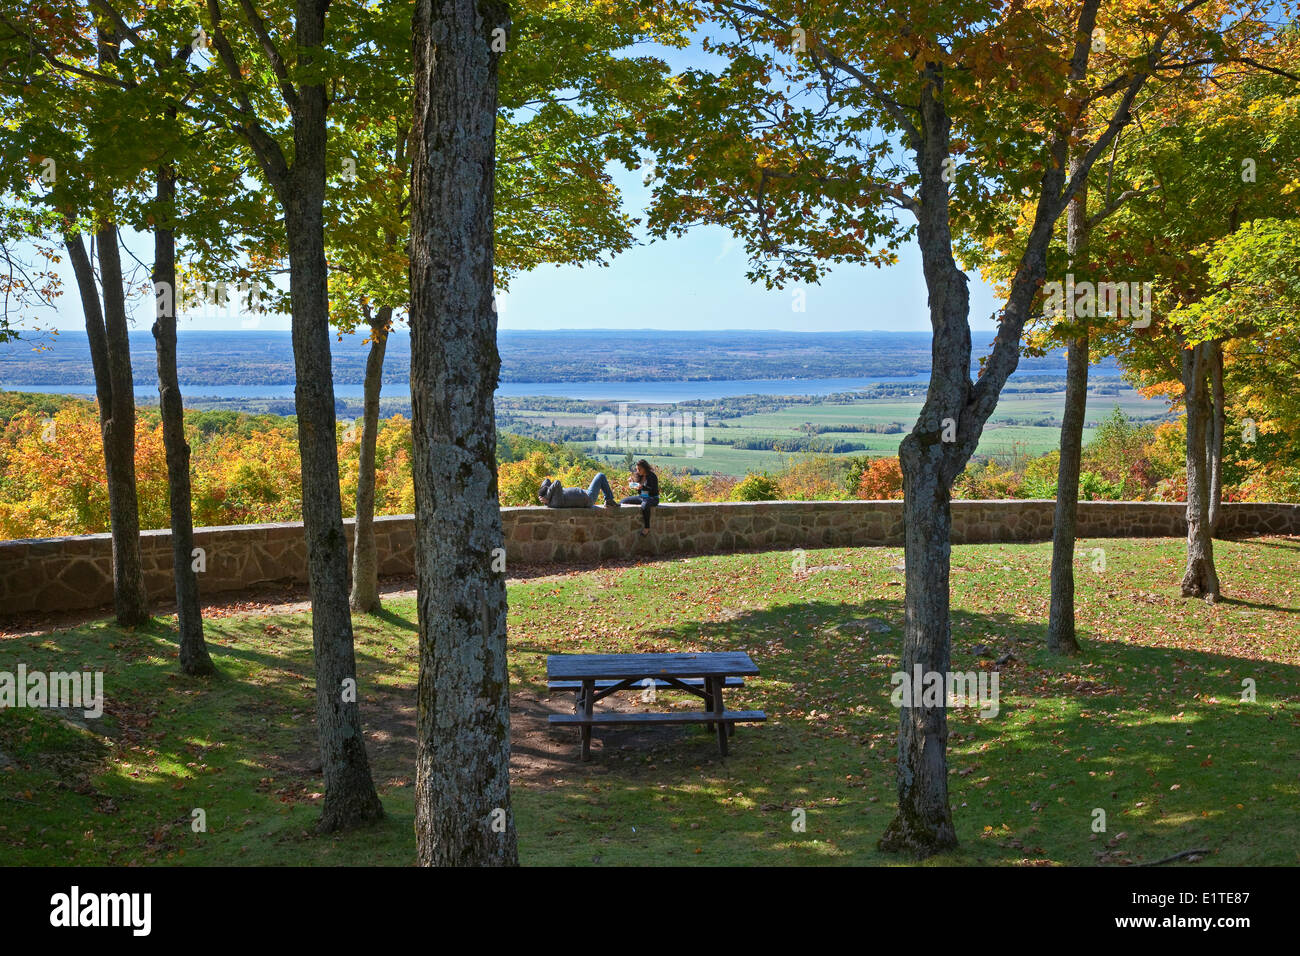 Couple sitting on stone masonry guardrail overlooking the Ottawa River, Gatineau Park, Gatineau, Quebec, Canada. - Stock Image